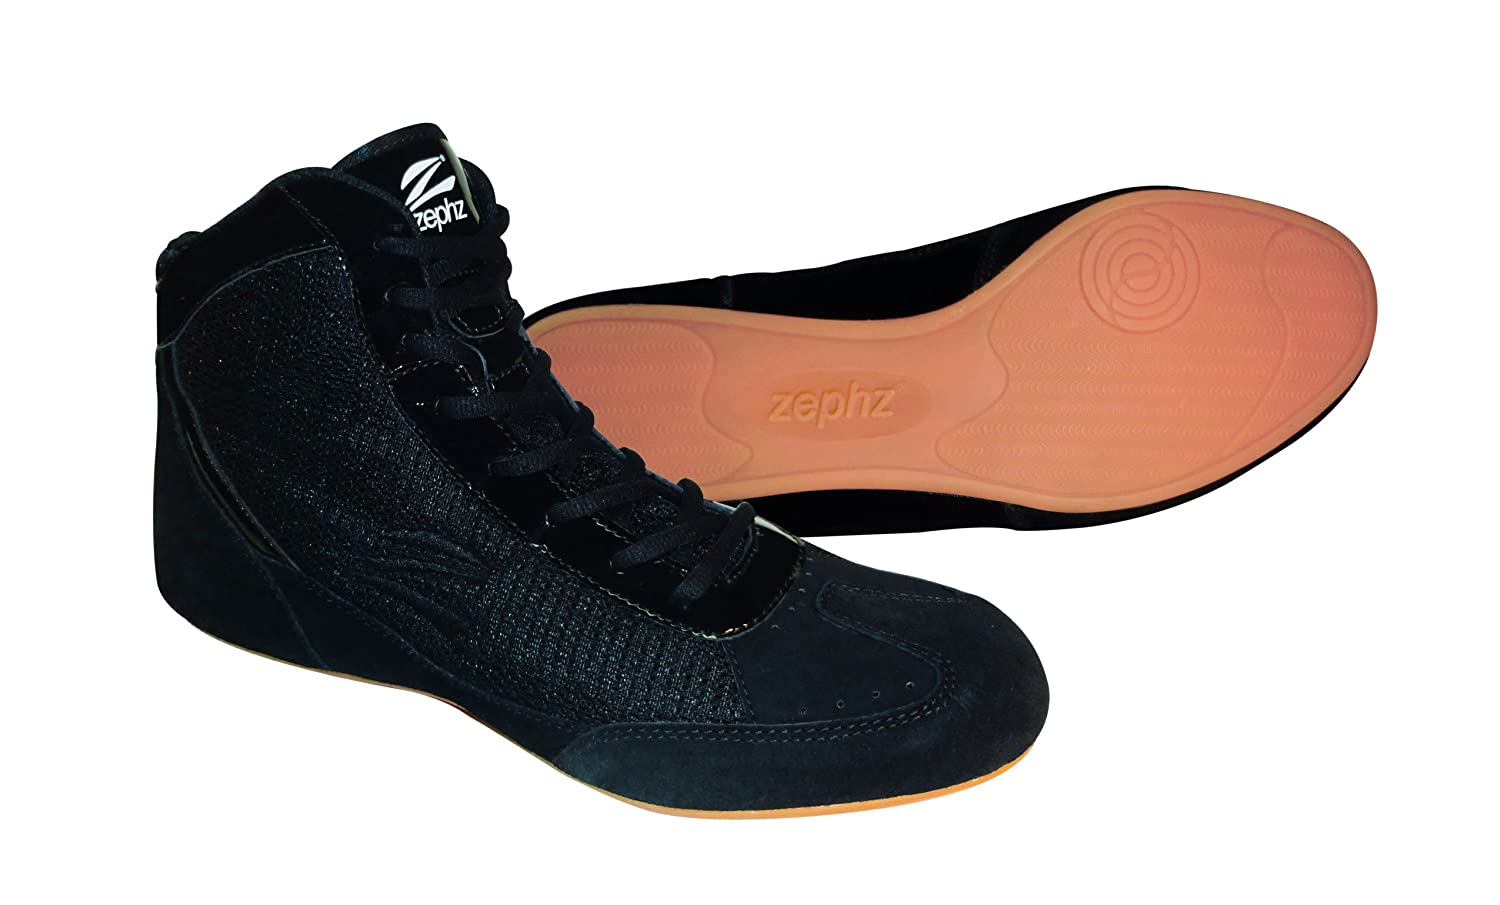 Zephz Tie-Up Wrestling Shoe Men's